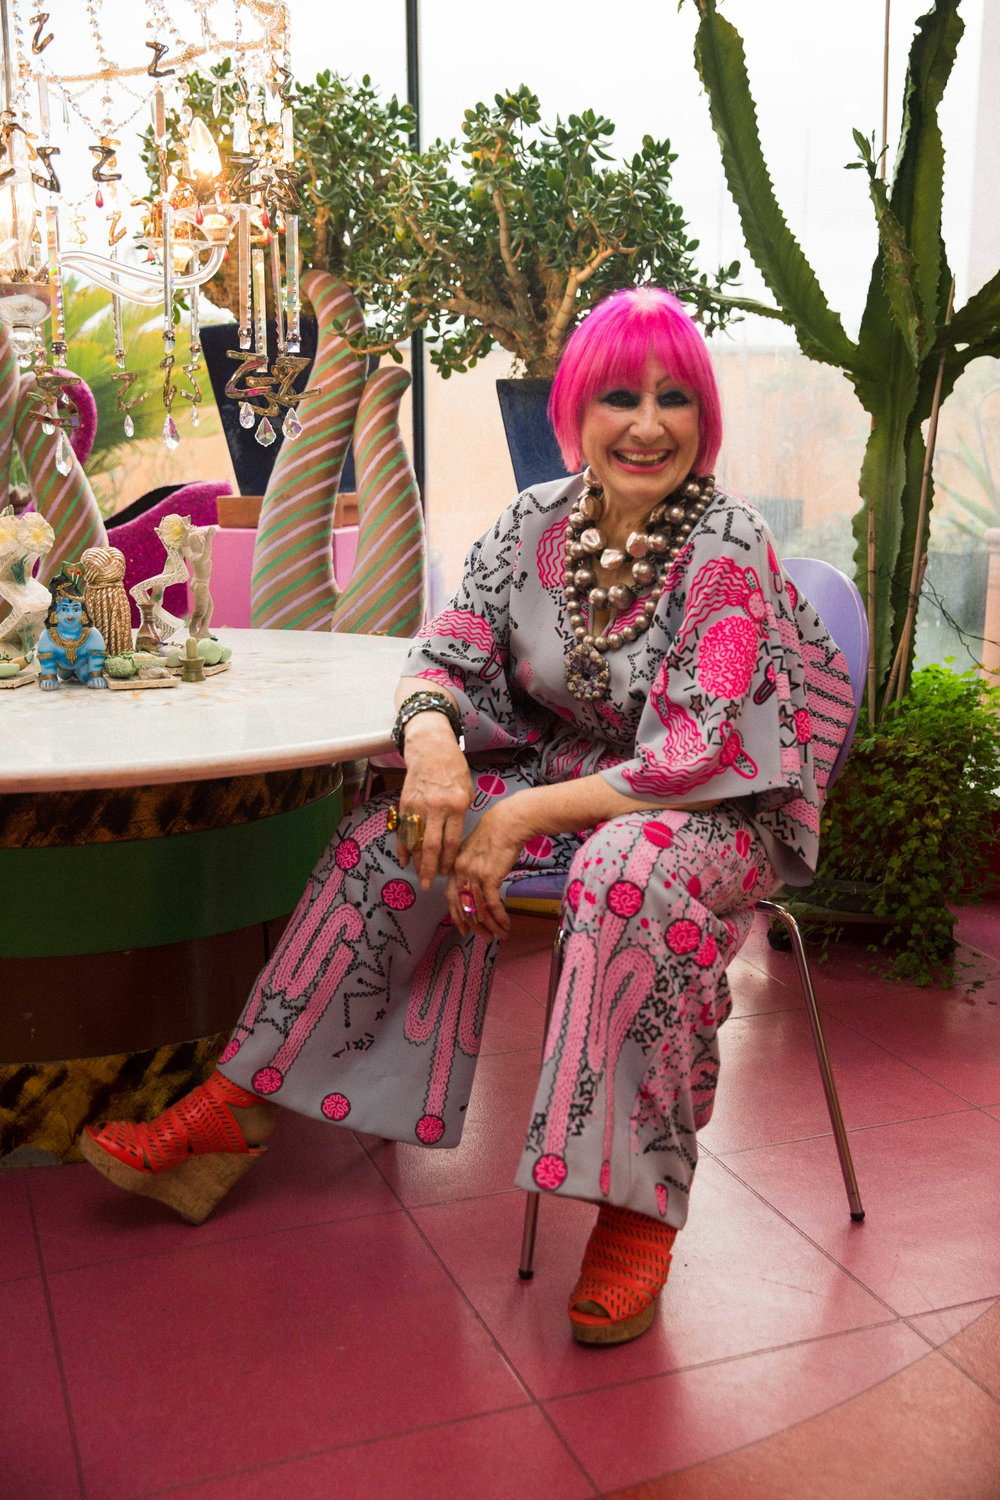 Zandra Rhodes x Marguerite - By Holly Whittaker05.jpg